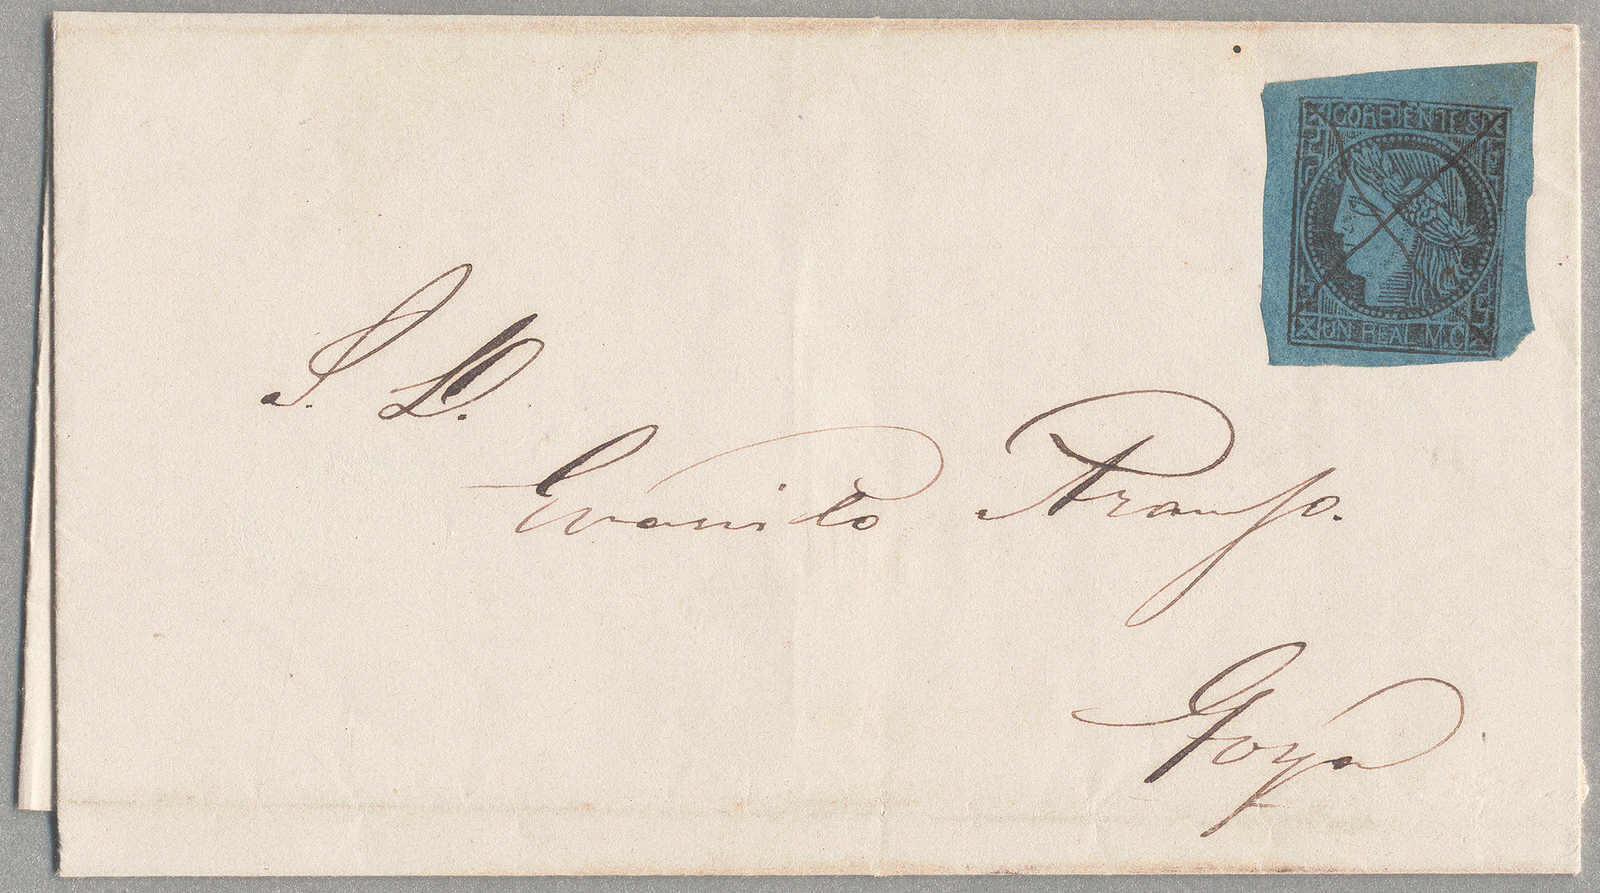 Lot 15151 - America, South/Middle/Caribbean Argentina -  classicphil GmbH 8'th classicphil Auction - Day 2